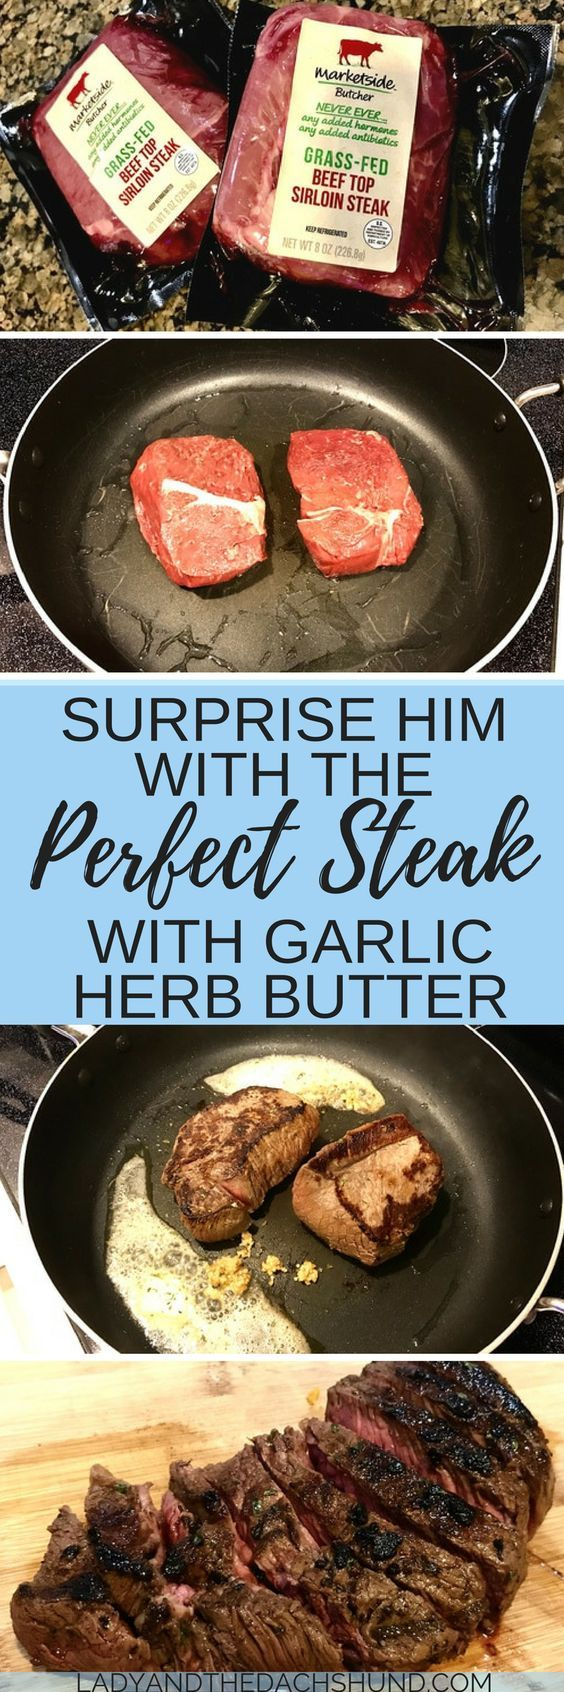 """Perfect steak with an easy steak recipe! Make the perfect steak for two with pan fried steak! Surprise him or impress him by cooking the perfect steak on the stove. Great birthday idea for him or anniversary dinner. An """"impress him dinner"""" is the perfect surprise idea for him!"""